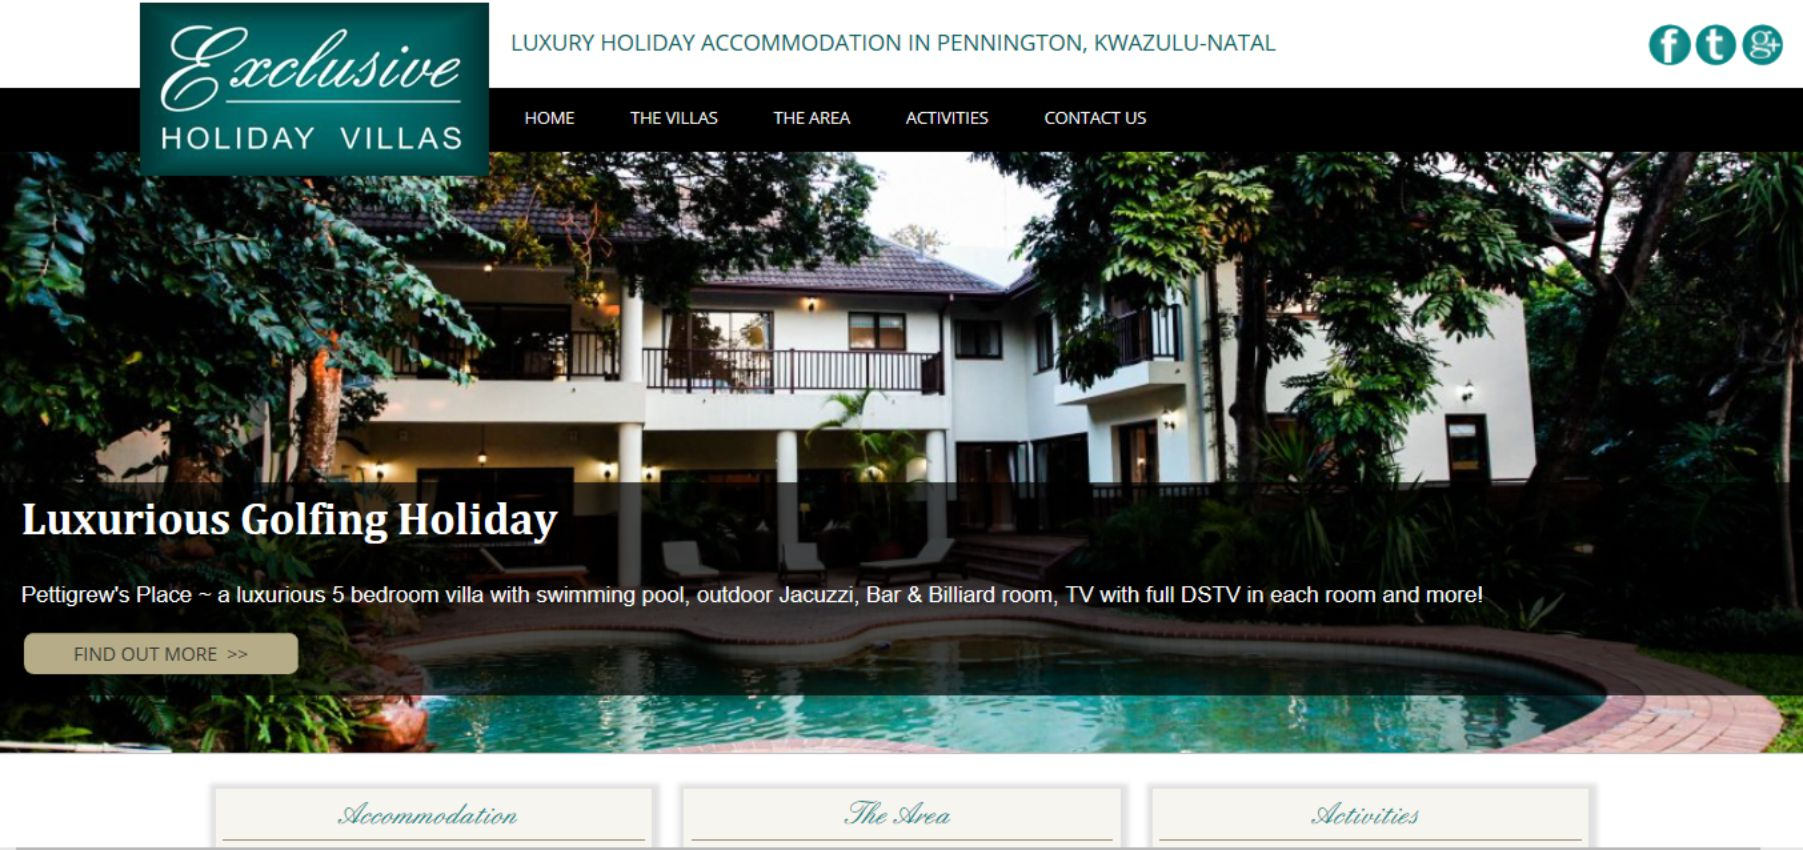 Exclusive Holiday Villas - www.exclusiveholidayvillas.co.za